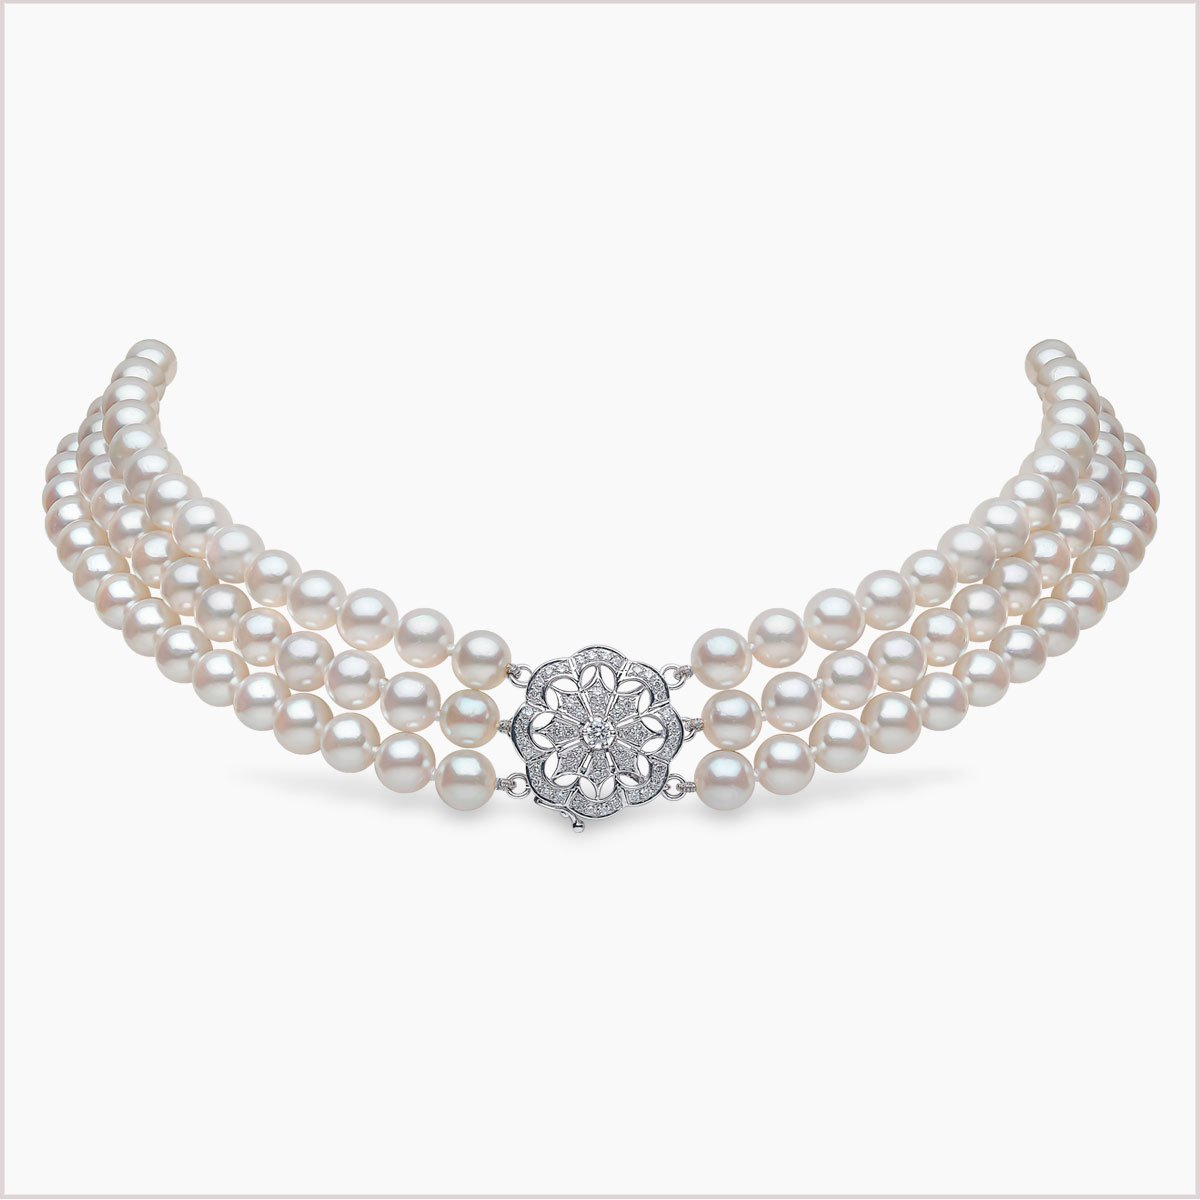 Yoko London Classic Akoya Pearl and Diamond Necklace